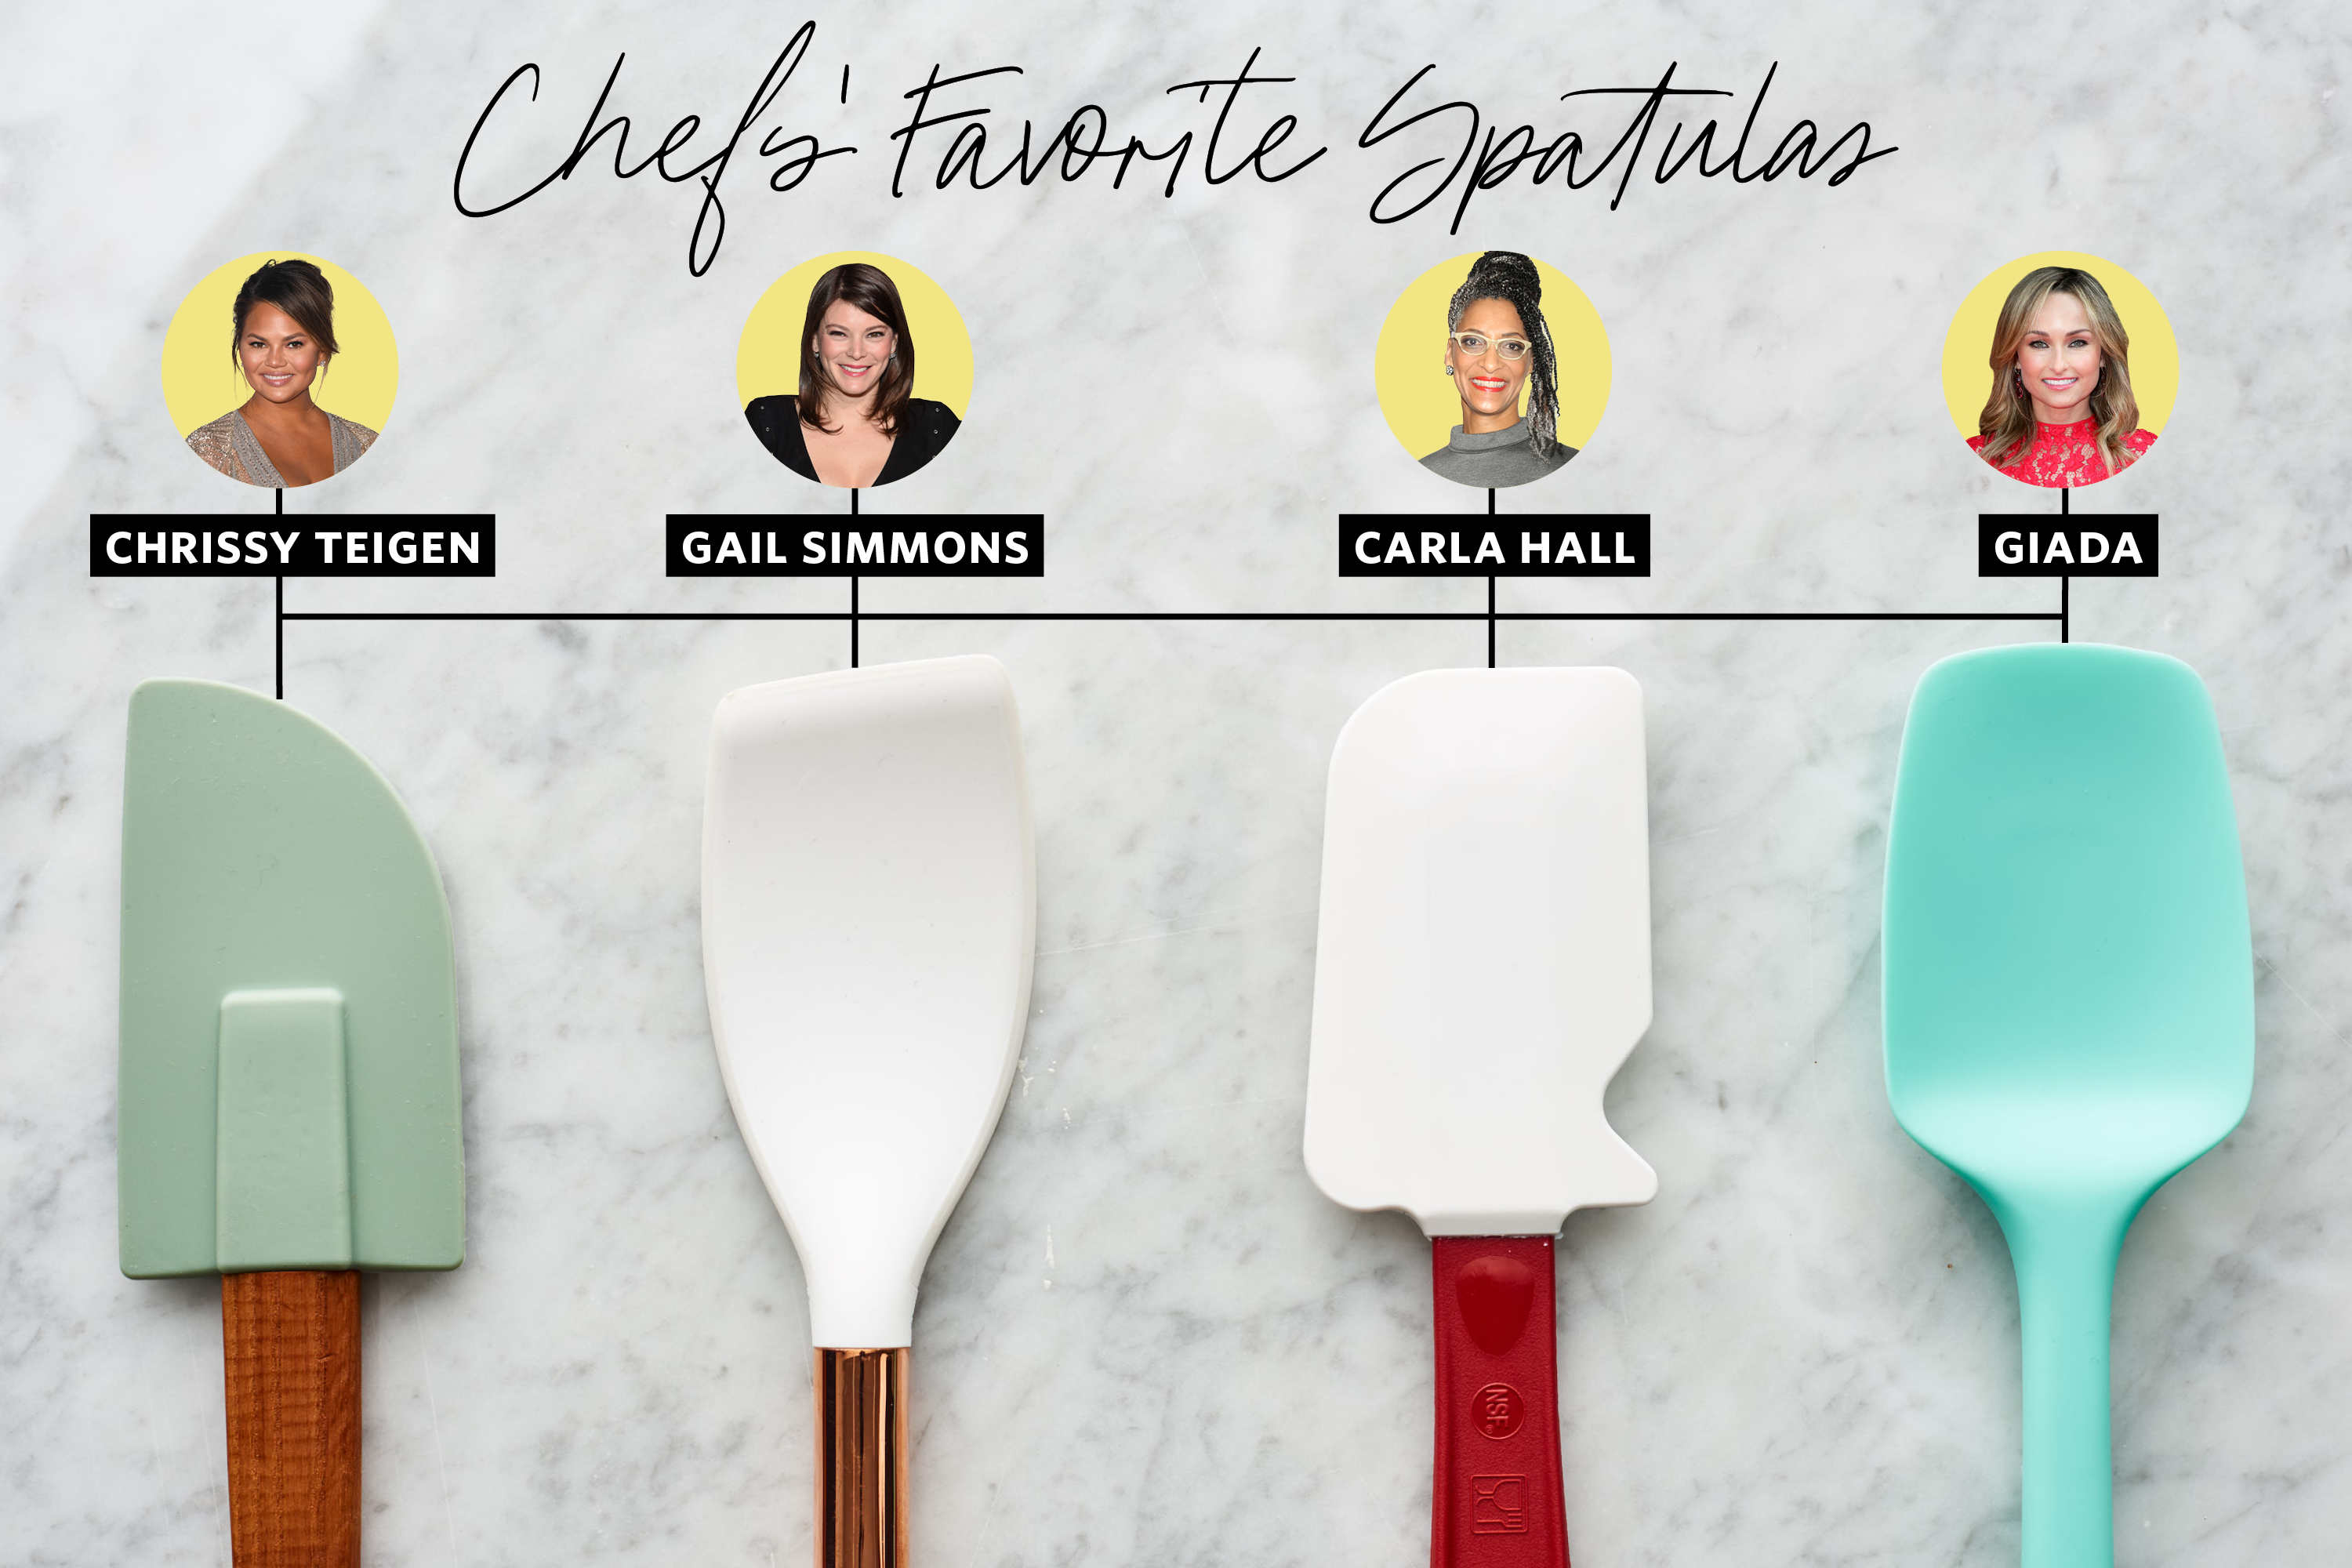 We Tested 4 Celebrity Chefs Favorite Spatulas And Found A Clear Winner Kitchn